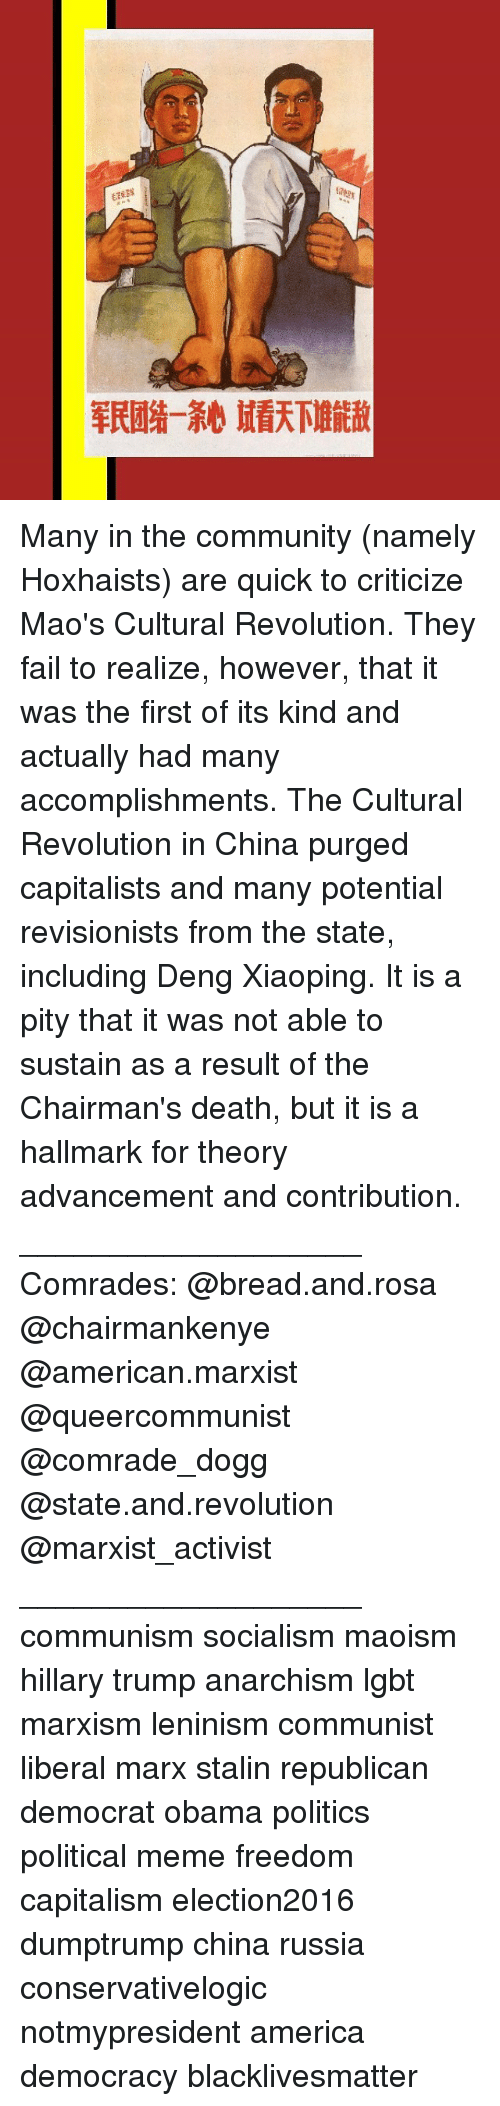 Memes, China, and Hallmark: tall  军民团结一条心试看天下堆能敌 Many in the community (namely Hoxhaists) are quick to criticize Mao's Cultural Revolution. They fail to realize, however, that it was the first of its kind and actually had many accomplishments. The Cultural Revolution in China purged capitalists and many potential revisionists from the state, including Deng Xiaoping. It is a pity that it was not able to sustain as a result of the Chairman's death, but it is a hallmark for theory advancement and contribution. ___________________ Comrades: @bread.and.rosa @chairmankenye @american.marxist @queercommunist @comrade_dogg @state.and.revolution @marxist_activist ___________________ communism socialism maoism hillary trump anarchism lgbt marxism leninism communist liberal marx stalin republican democrat obama politics political meme freedom capitalism election2016 dumptrump china russia conservativelogic notmypresident america democracy blacklivesmatter